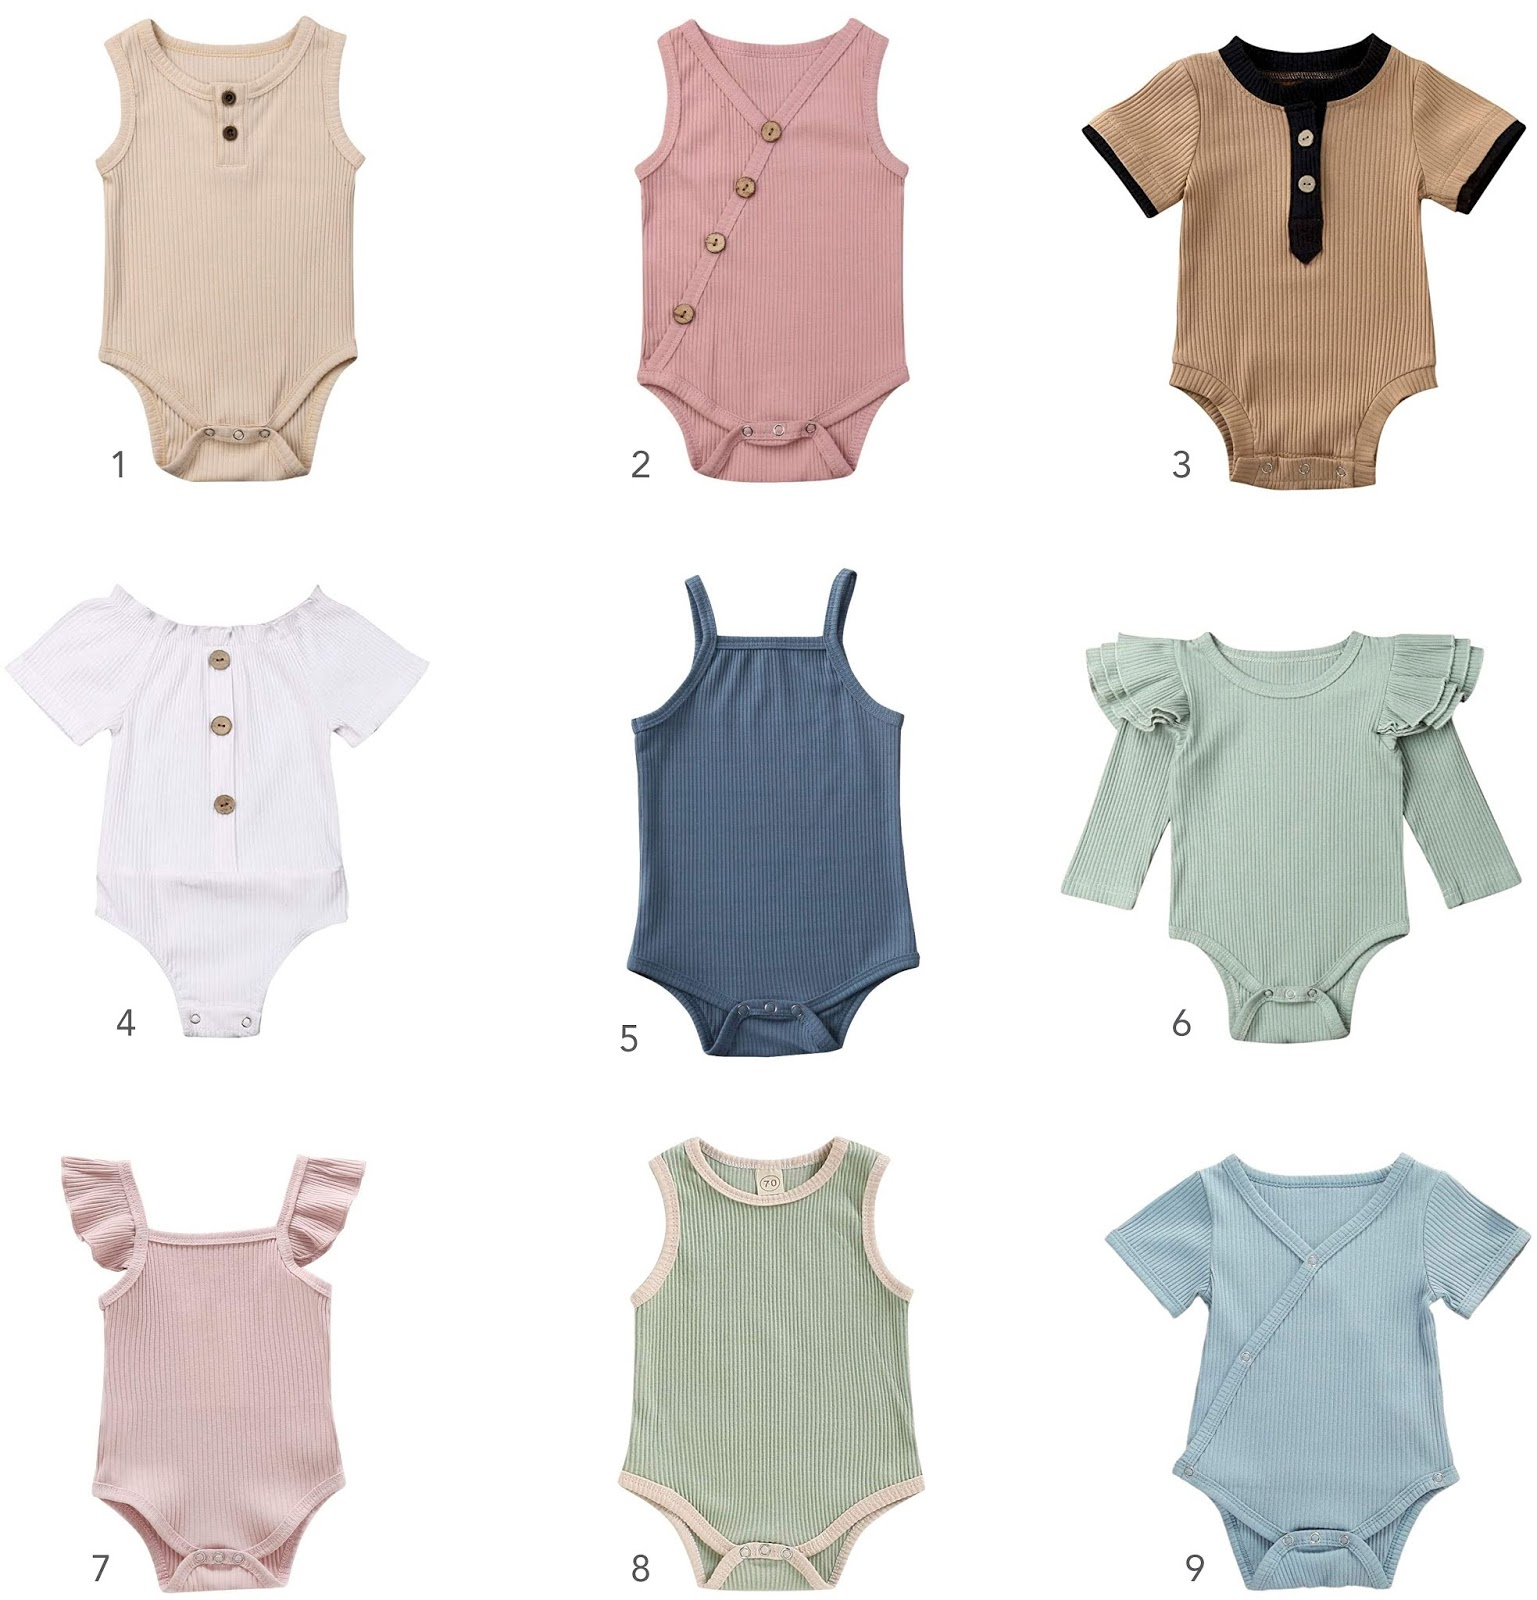 A round-up of nine cute and basic ribbed baby onesies